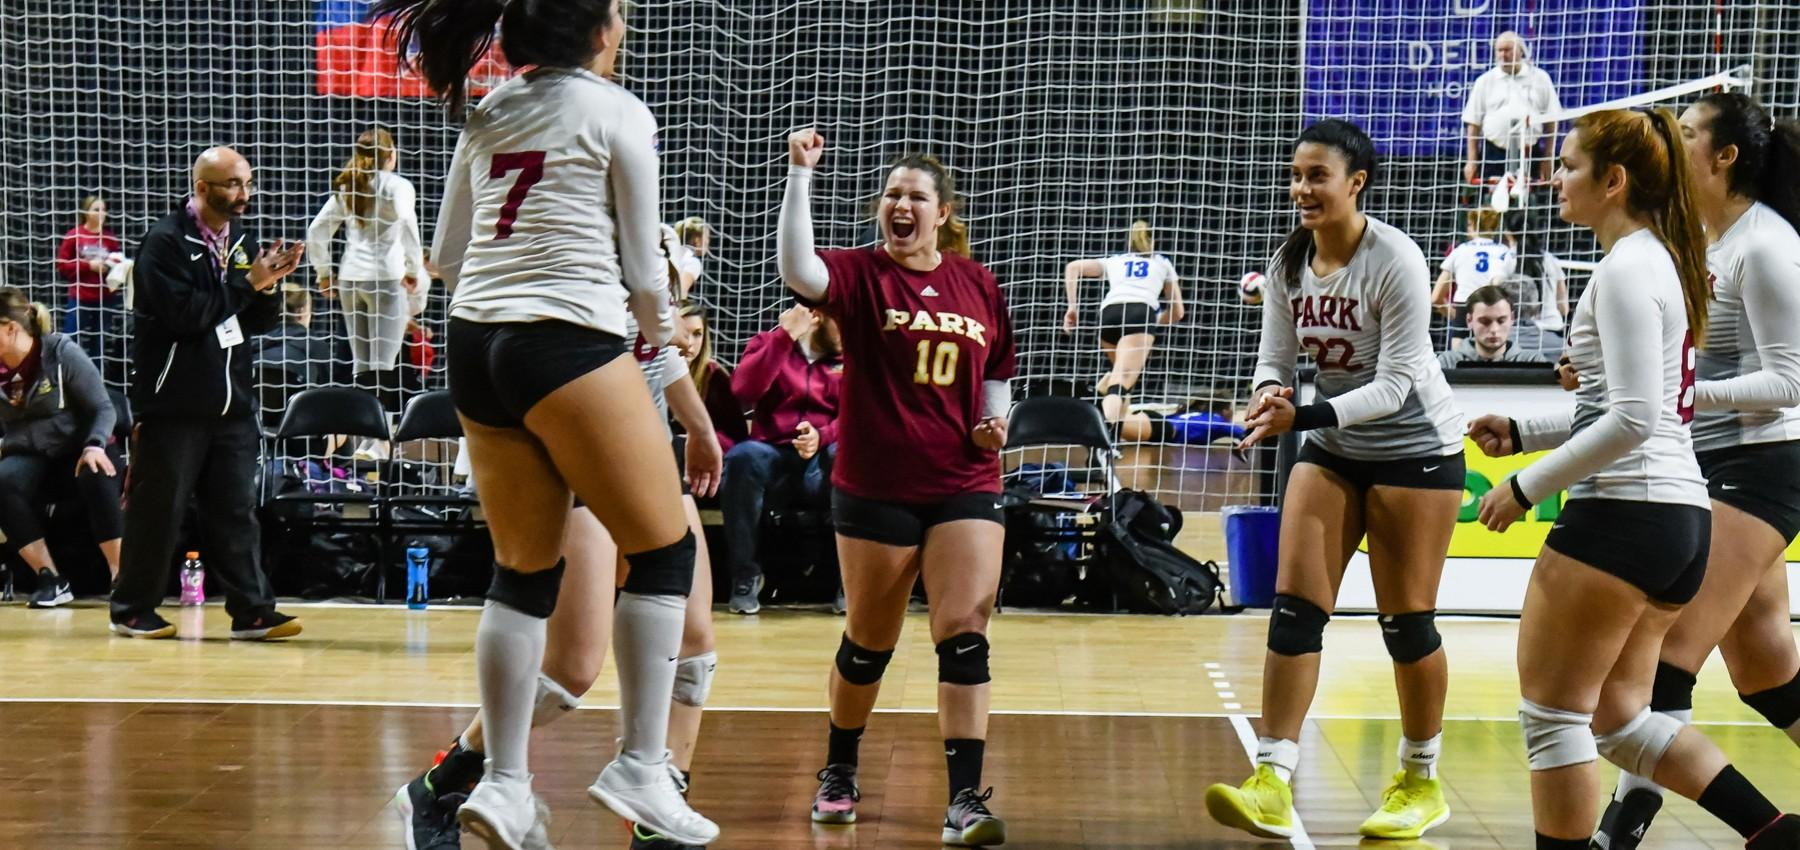 Women S Volleyball To Begin 2019 Ranked No 1 Park University Athletics